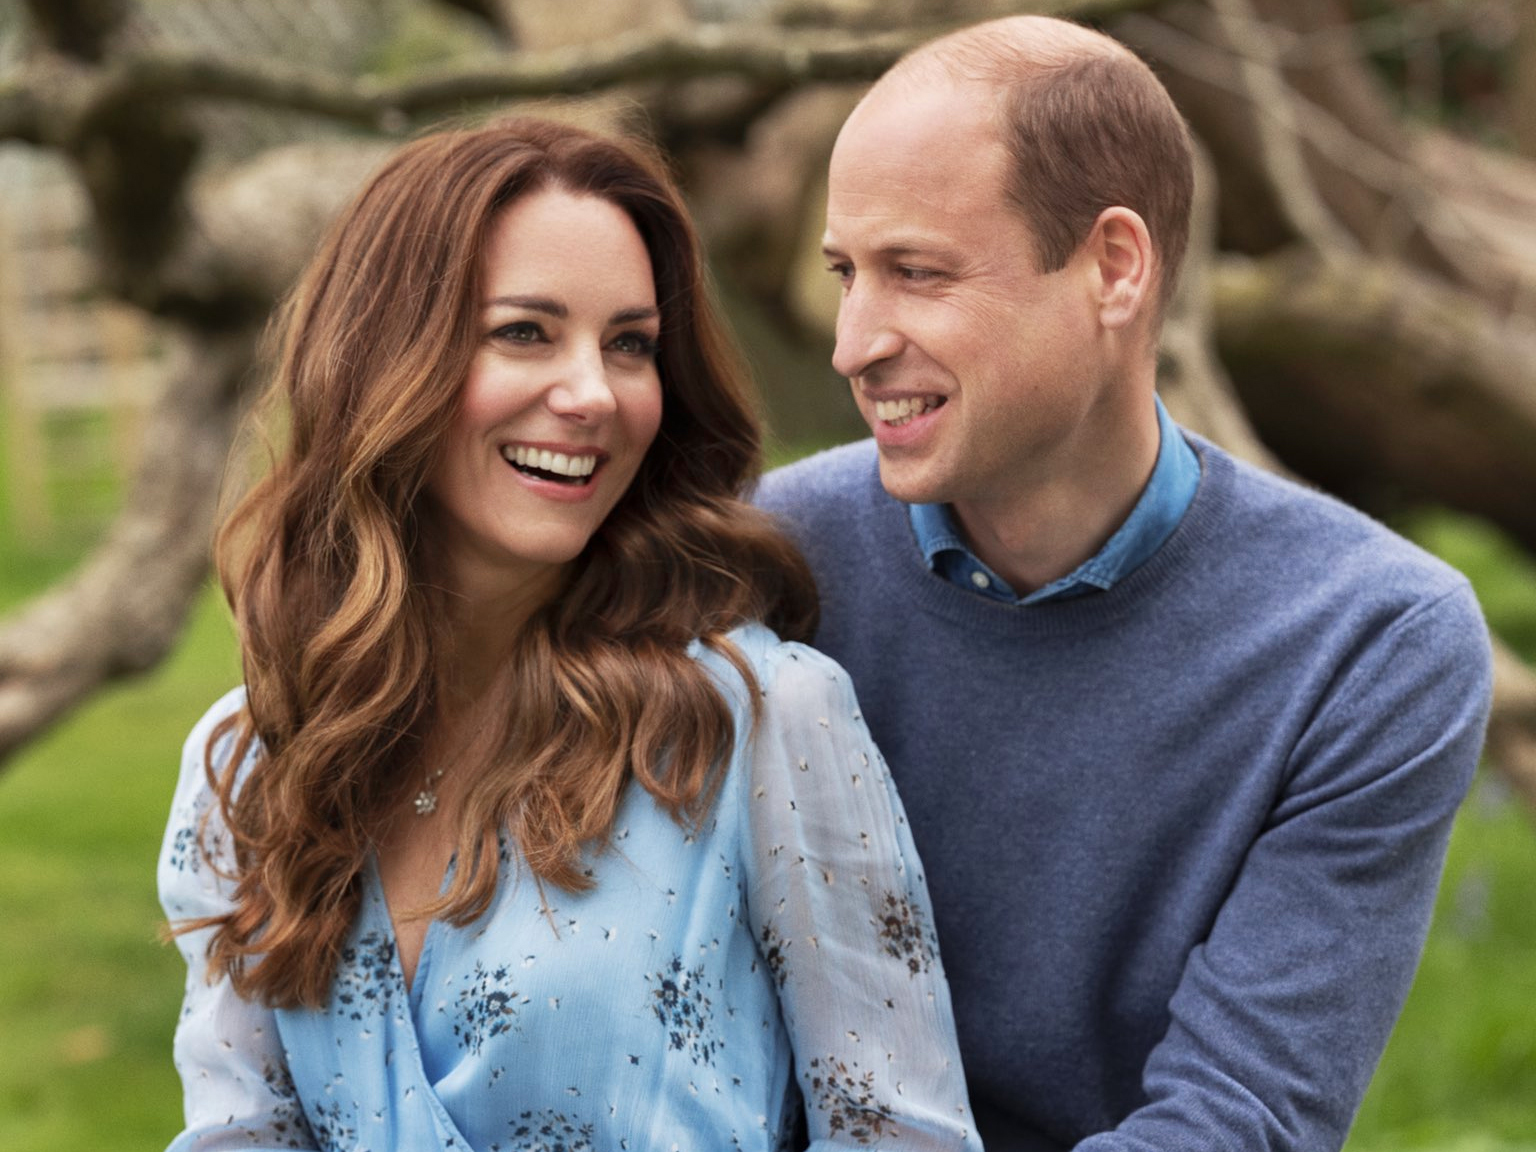 Kate Middleton Wears Blue Wrap Dress for 10-Year Anniversary photo shoot: Get the Look